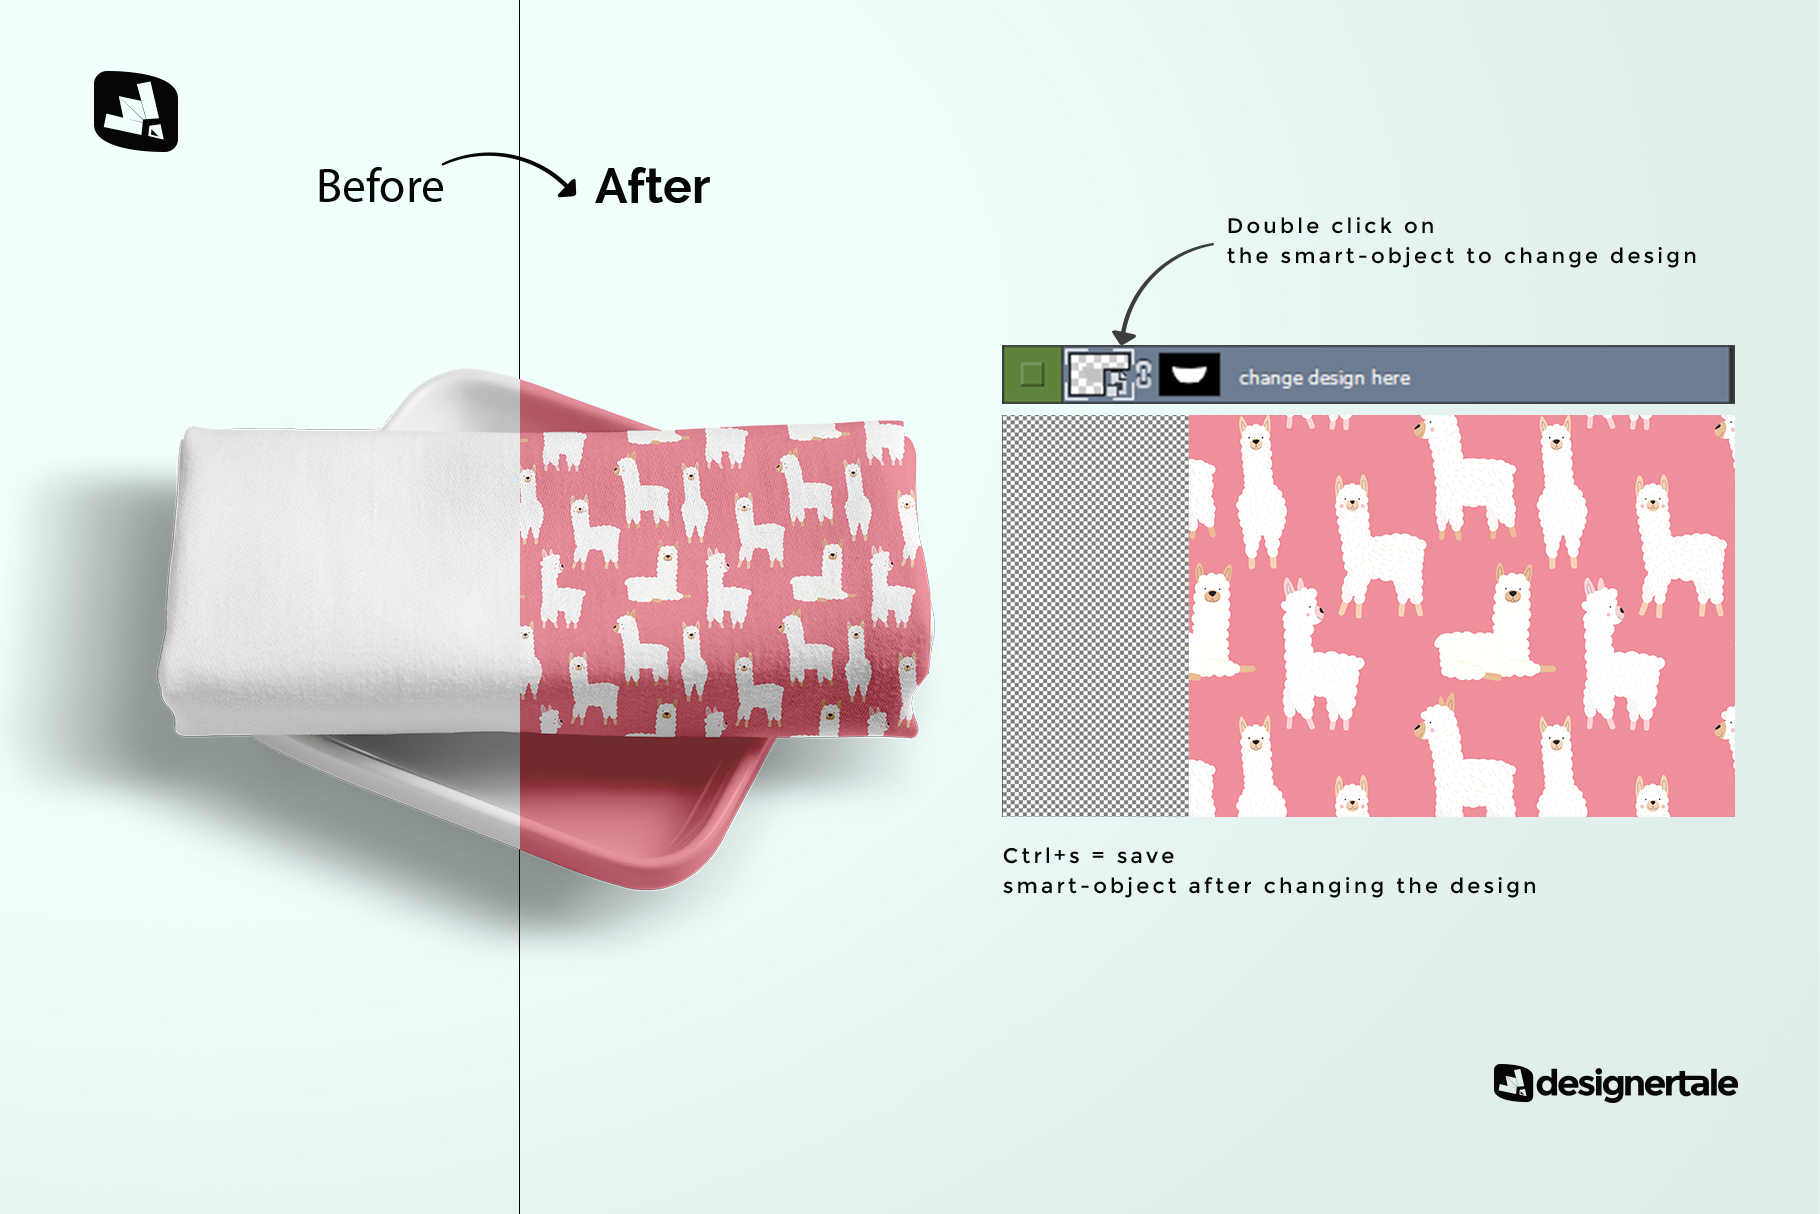 how to change design of the top view dinner cloth with dish mockup